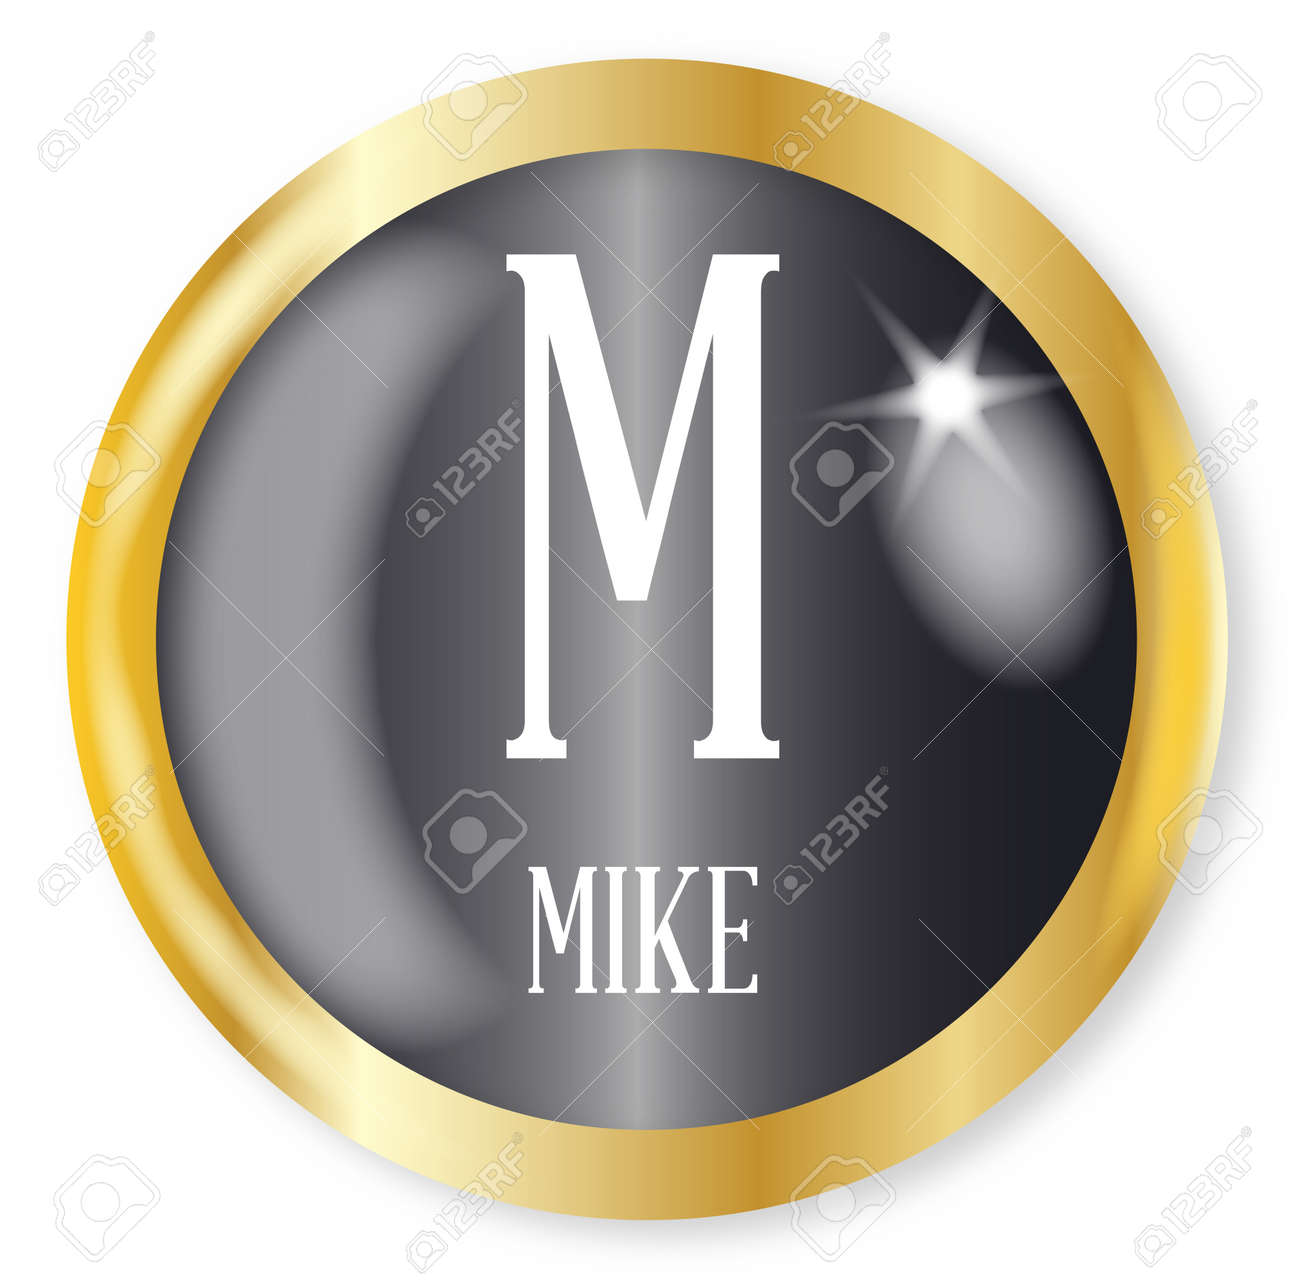 M For Mike Button From The Nato Phonetic Alphabet With A Gold Royalty Free Cliparts Vectors And Stock Illustration Image 77062484